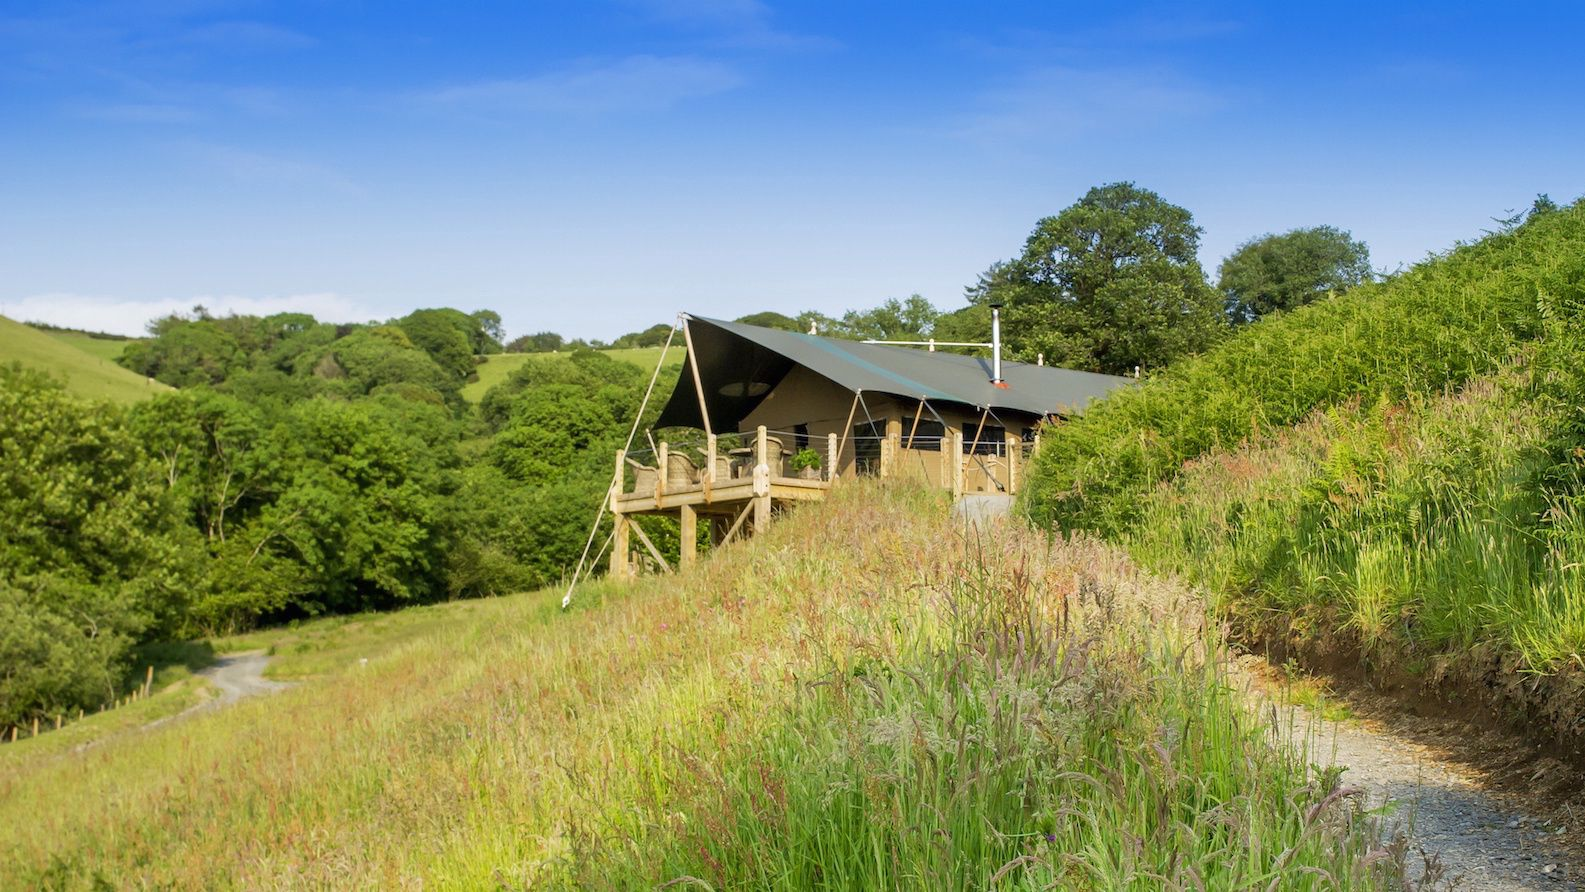 Glamping in Exmoor National Park